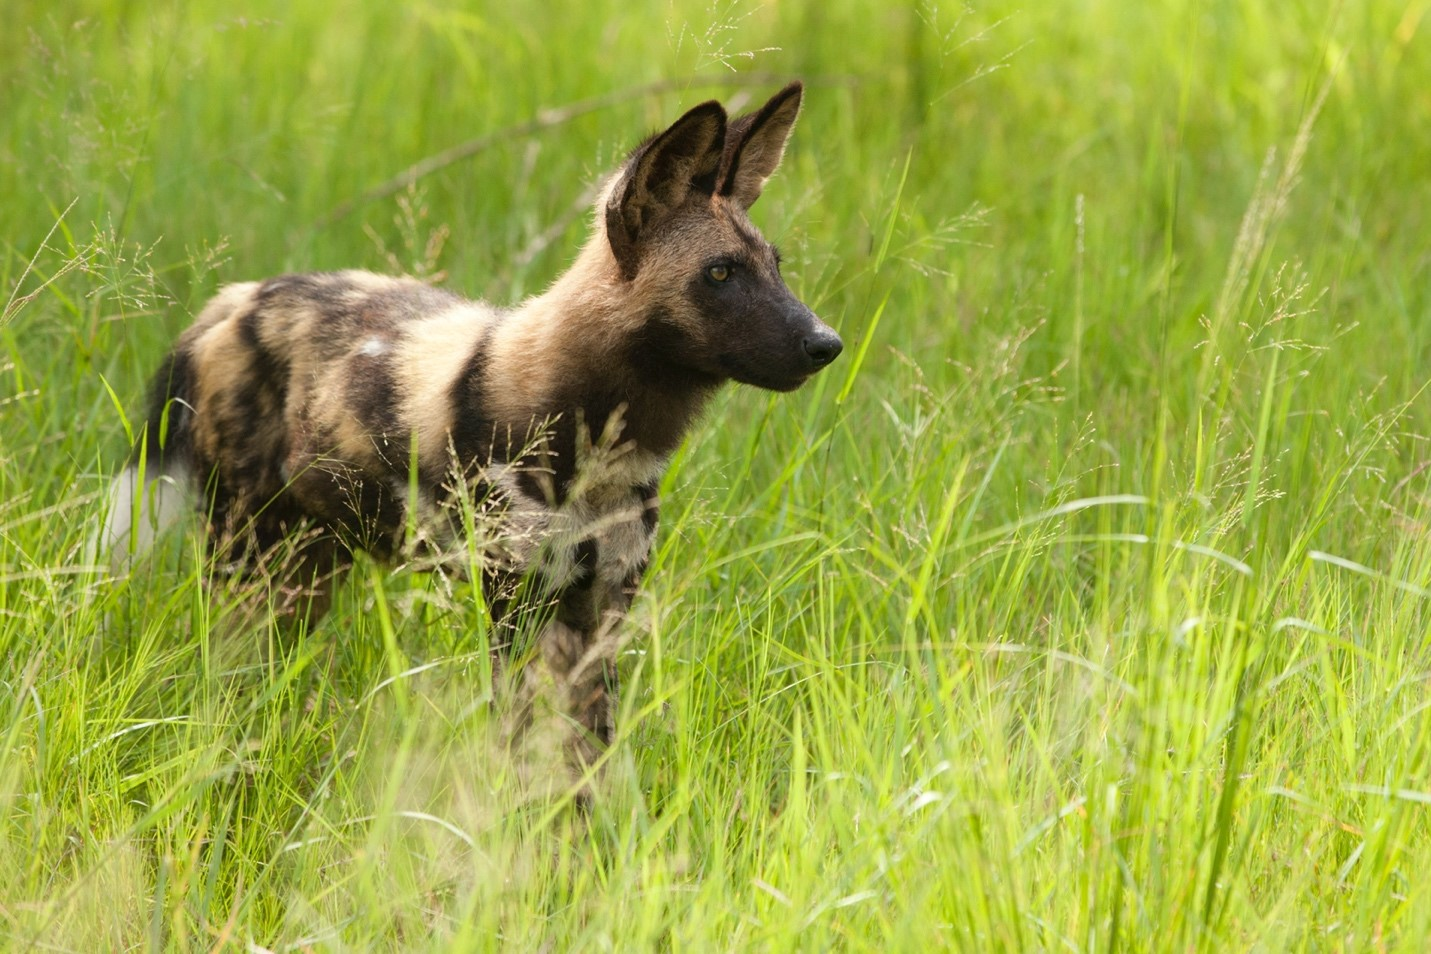 a wild dog poses in green grass in botswana's okavango delta